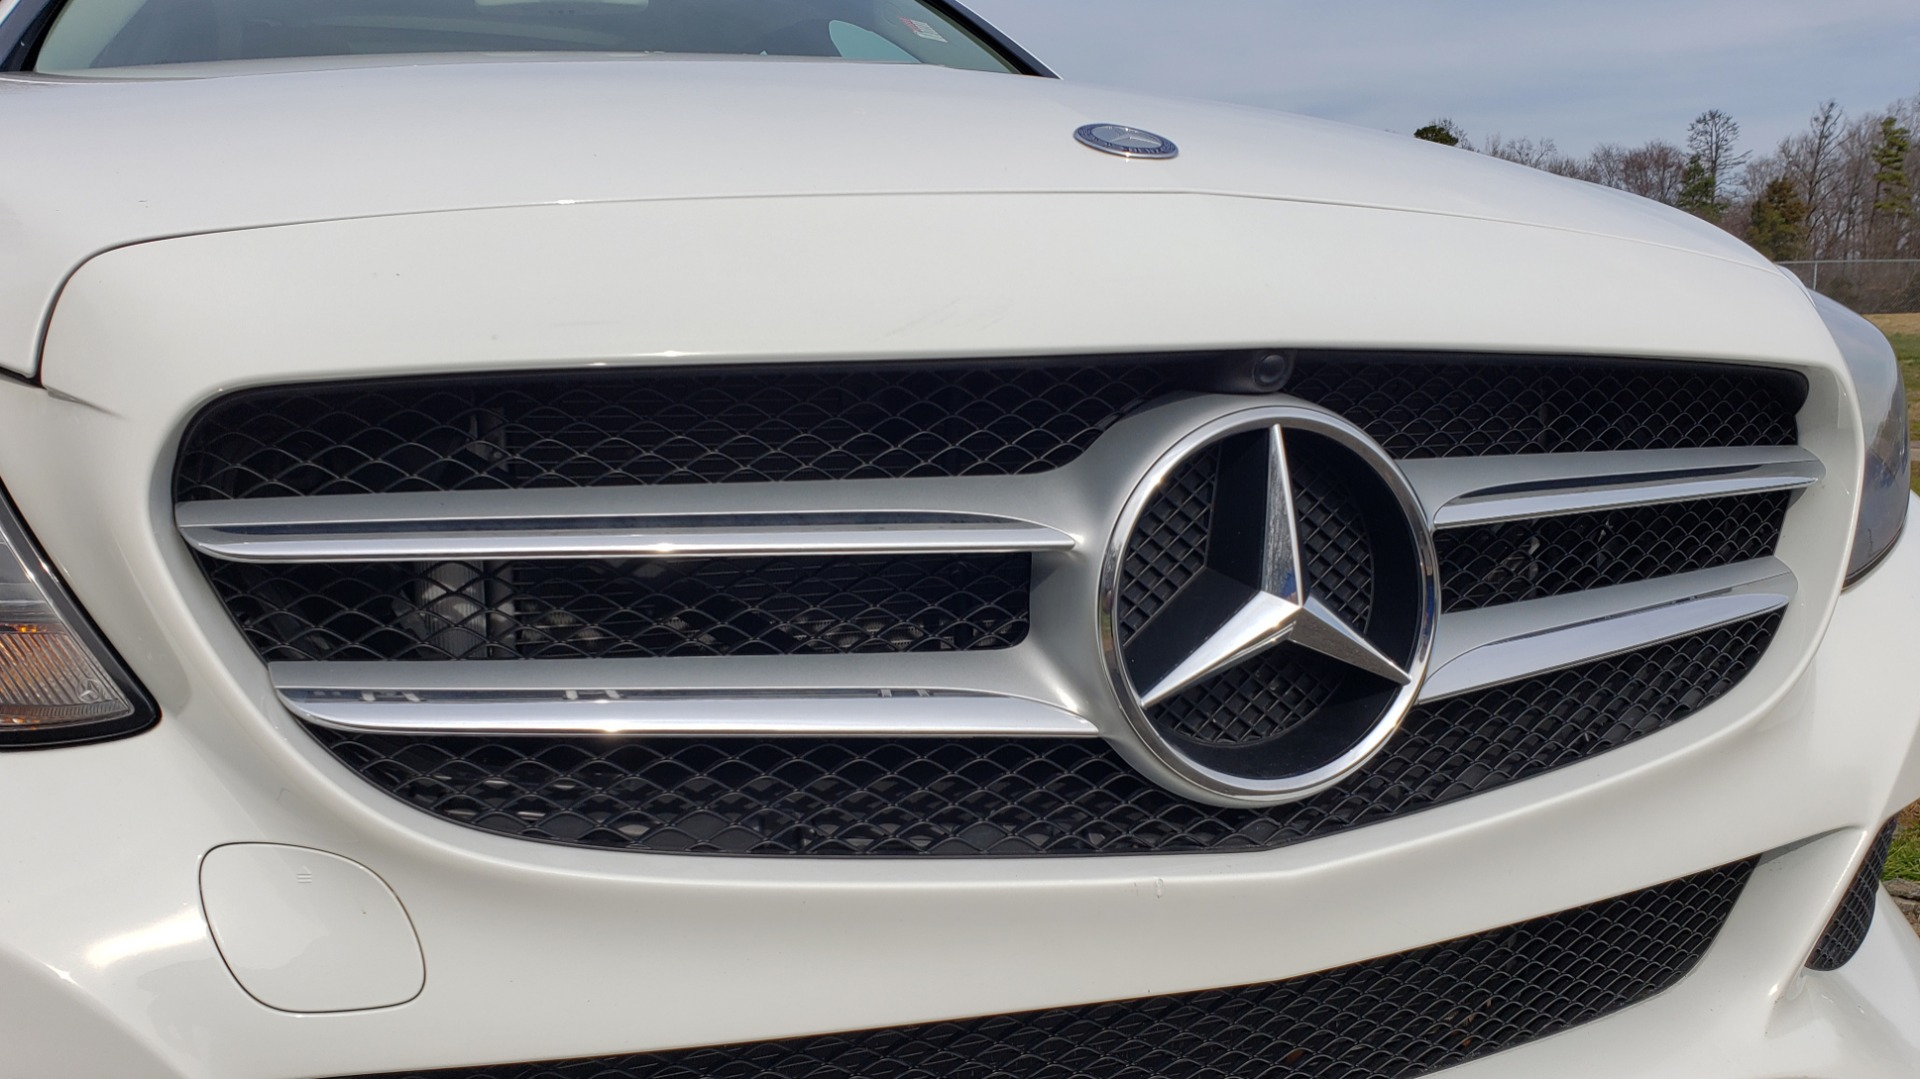 Used 2017 Mercedes-Benz C-CLASS C 300 / PREM PKG / PANO-ROOF / REARVIEW / HTD STS for sale Sold at Formula Imports in Charlotte NC 28227 12